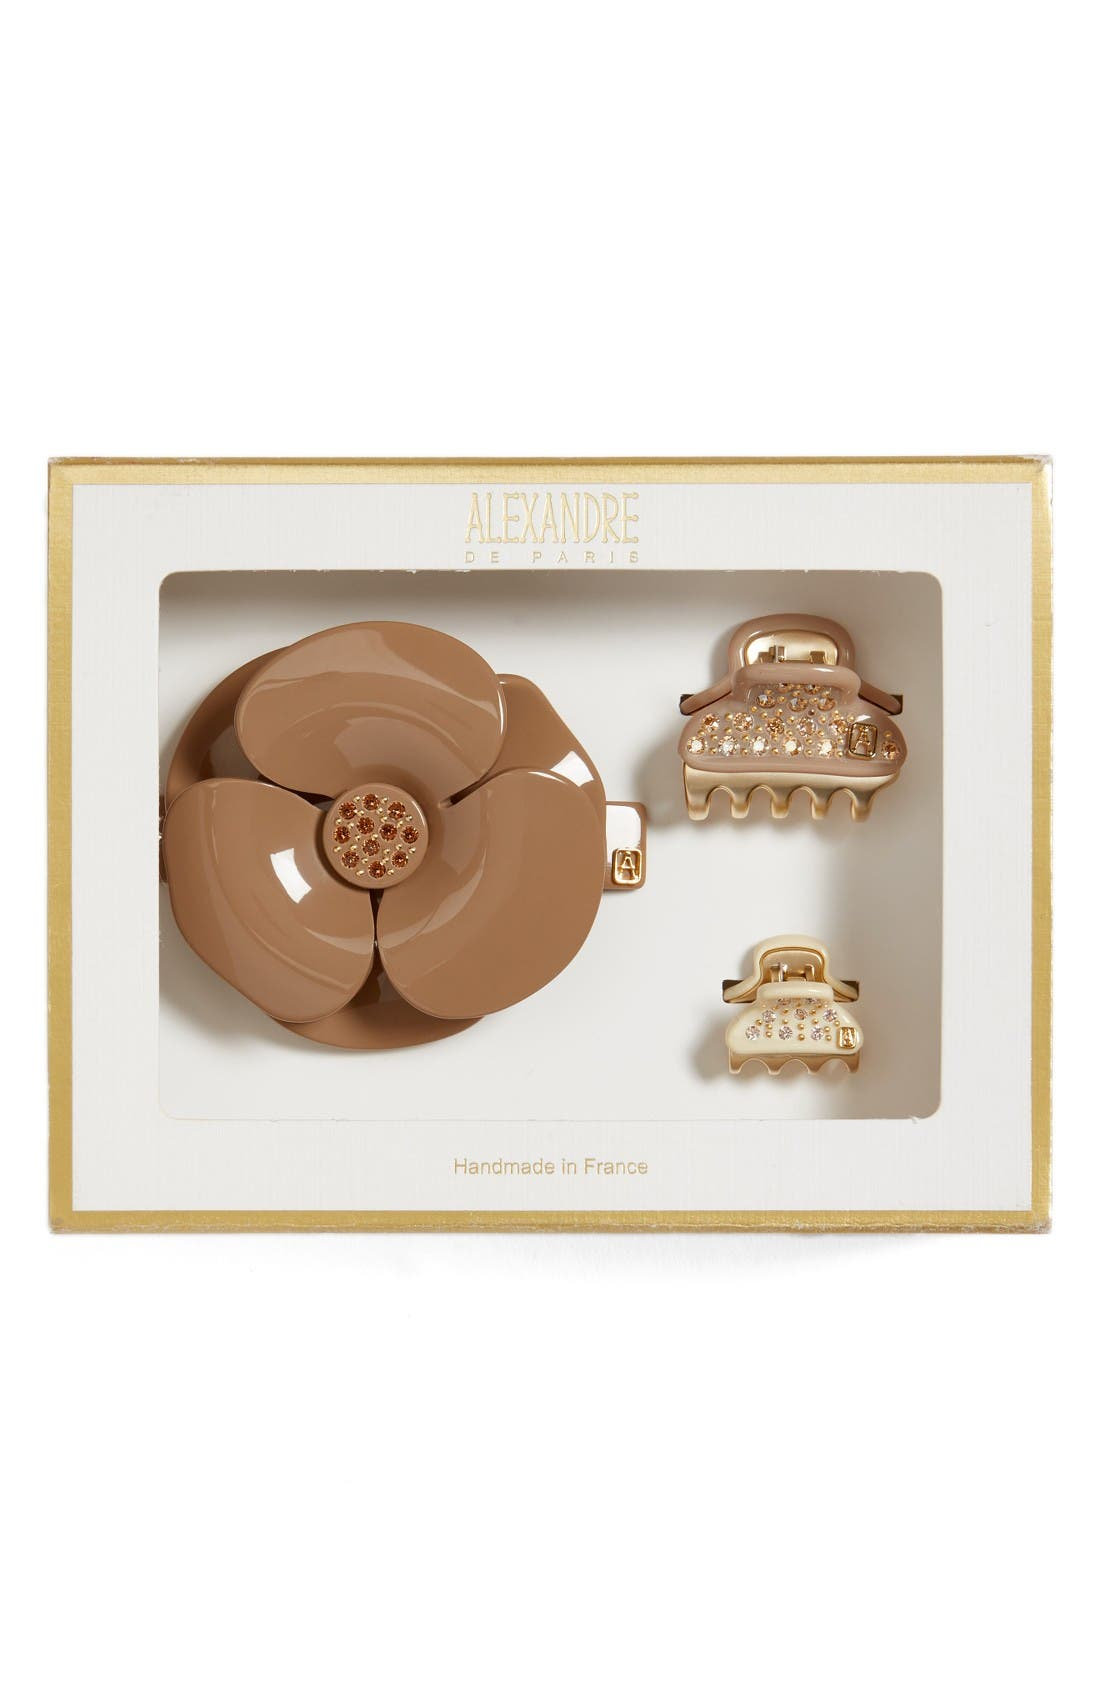 ALEXANDRE DE PARIS Camelia Barrette & Mini Clips